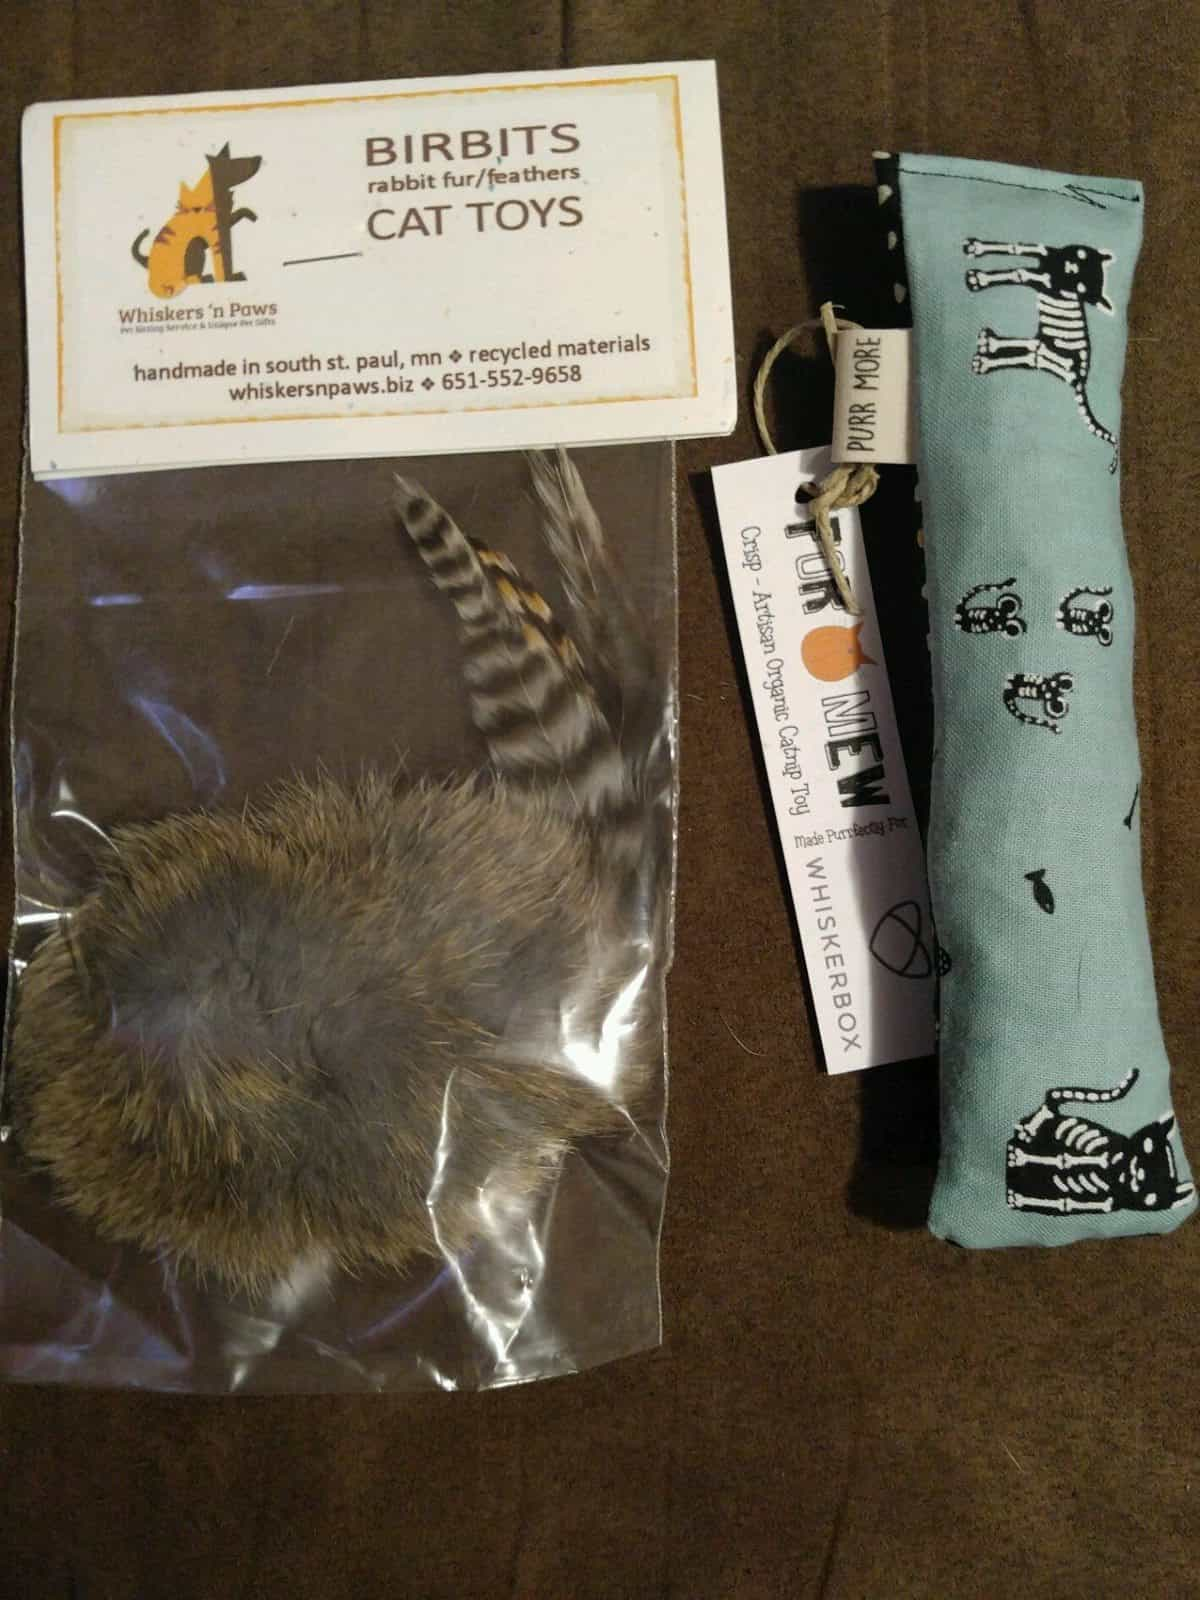 WhiskerBox October 2016 Box Review - Cat Toys